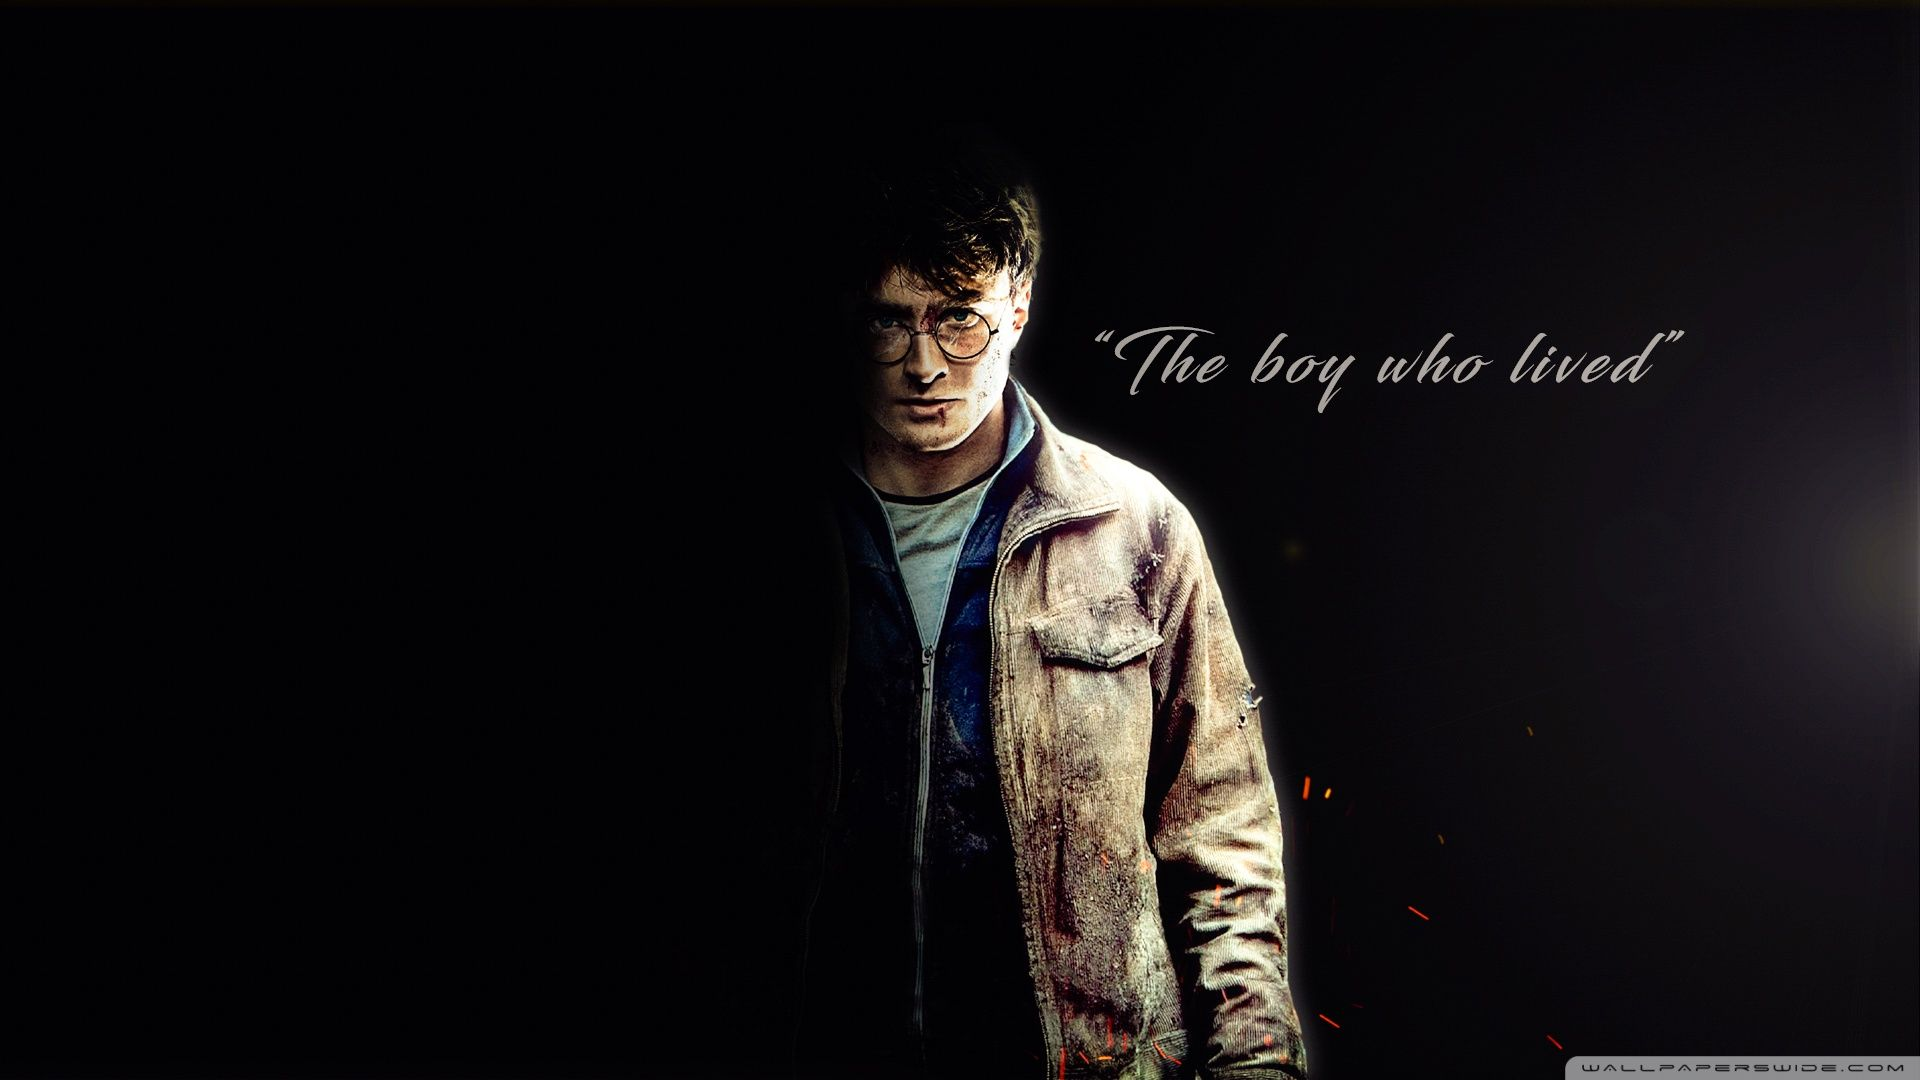 harry potter wallpapers top free harry potter backgrounds wallpaperaccess harry potter wallpapers top free